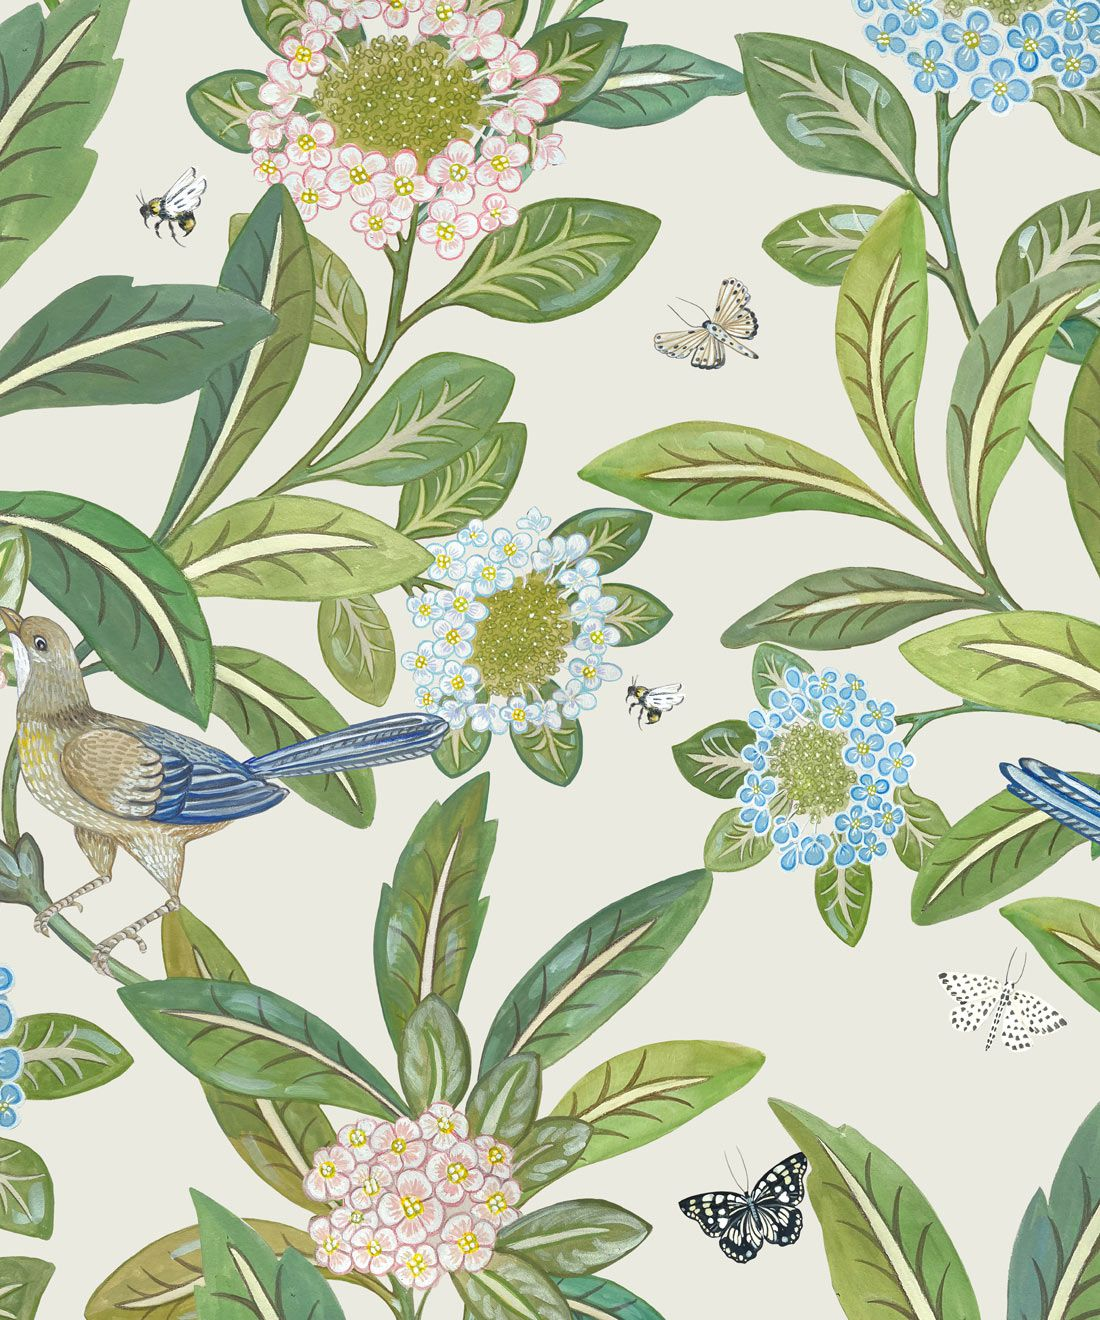 Summer Garden Wallpaper (Two Rolls)